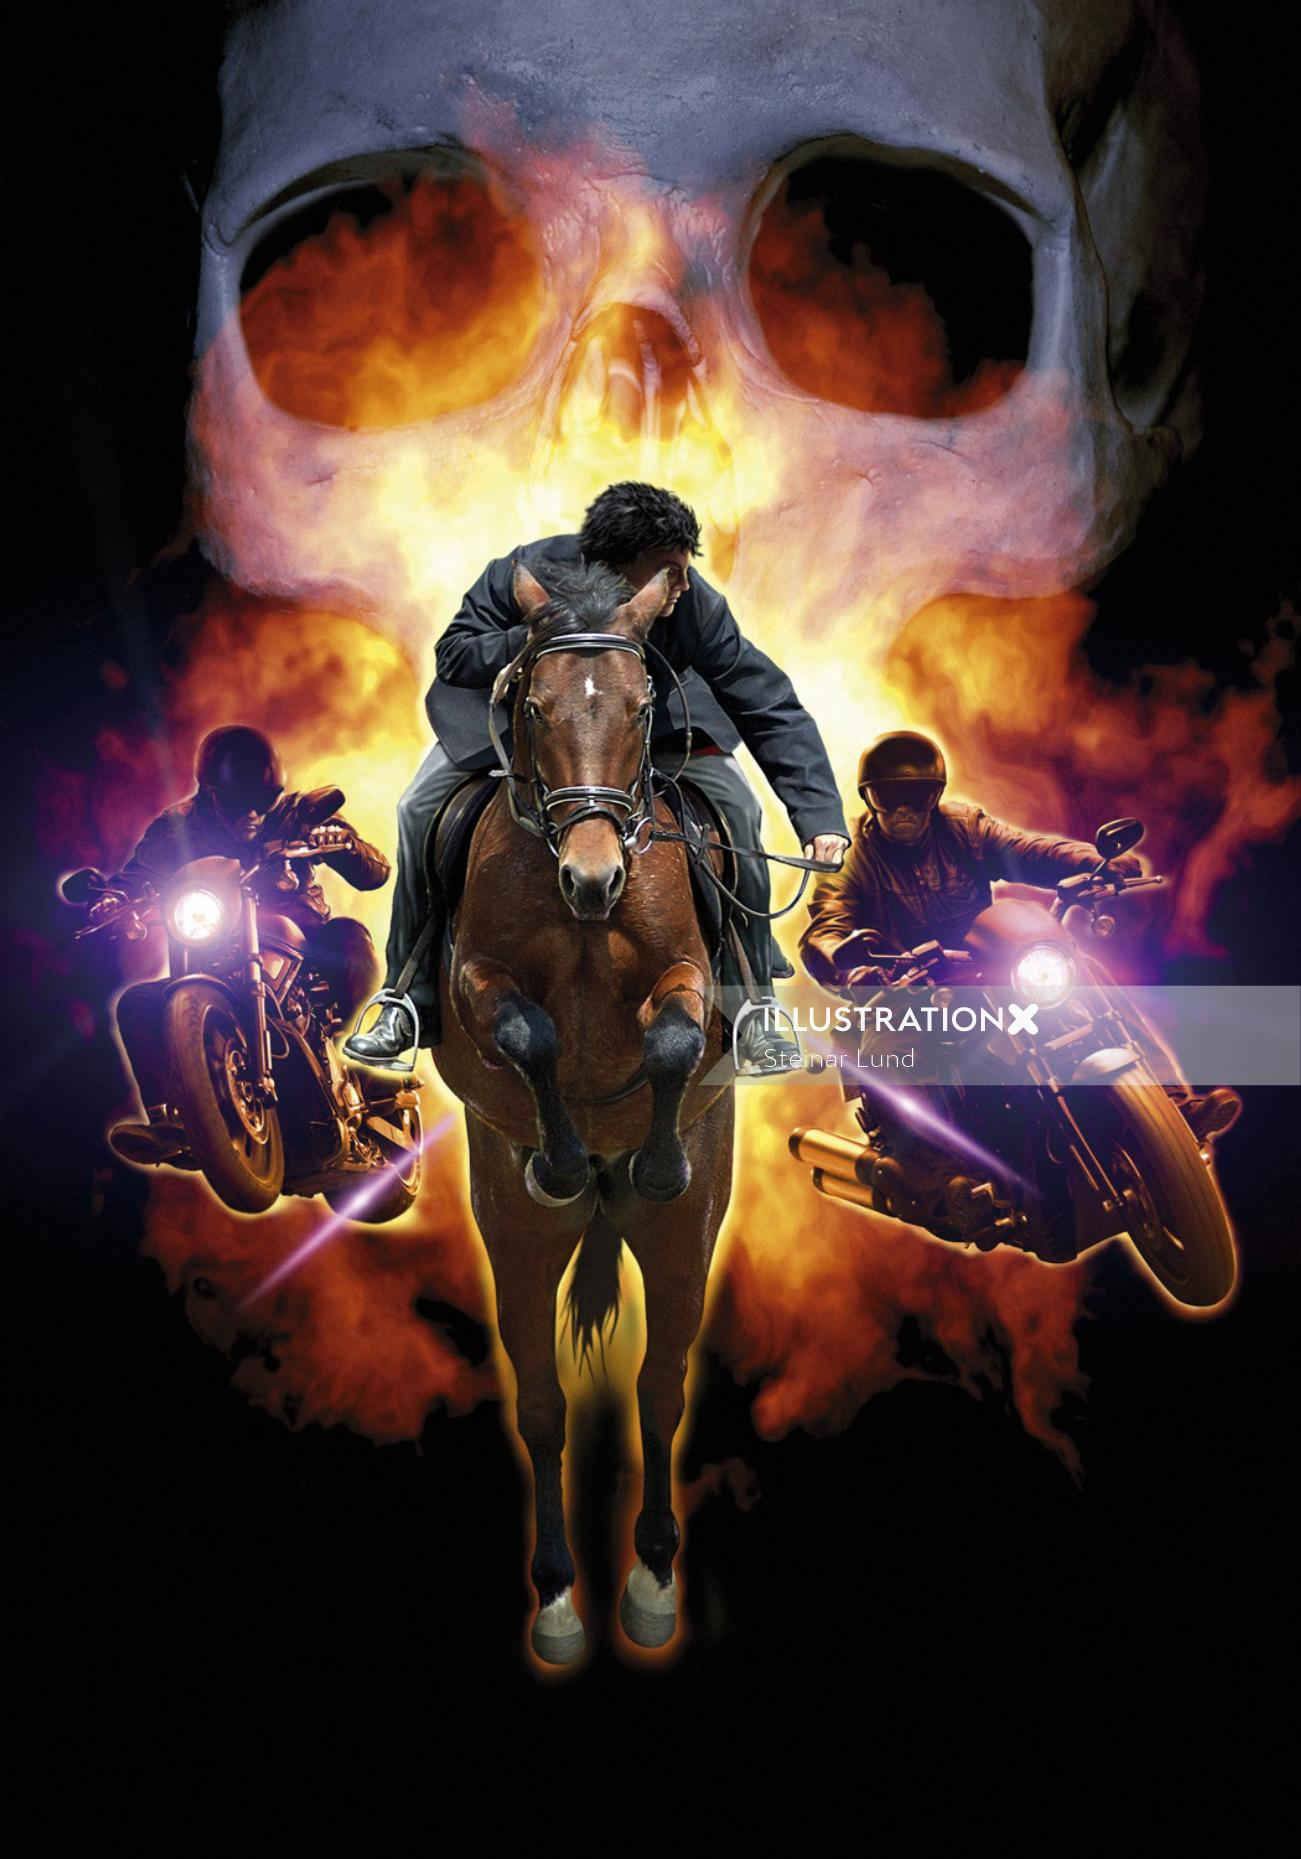 Action with horse rider and motorbikes